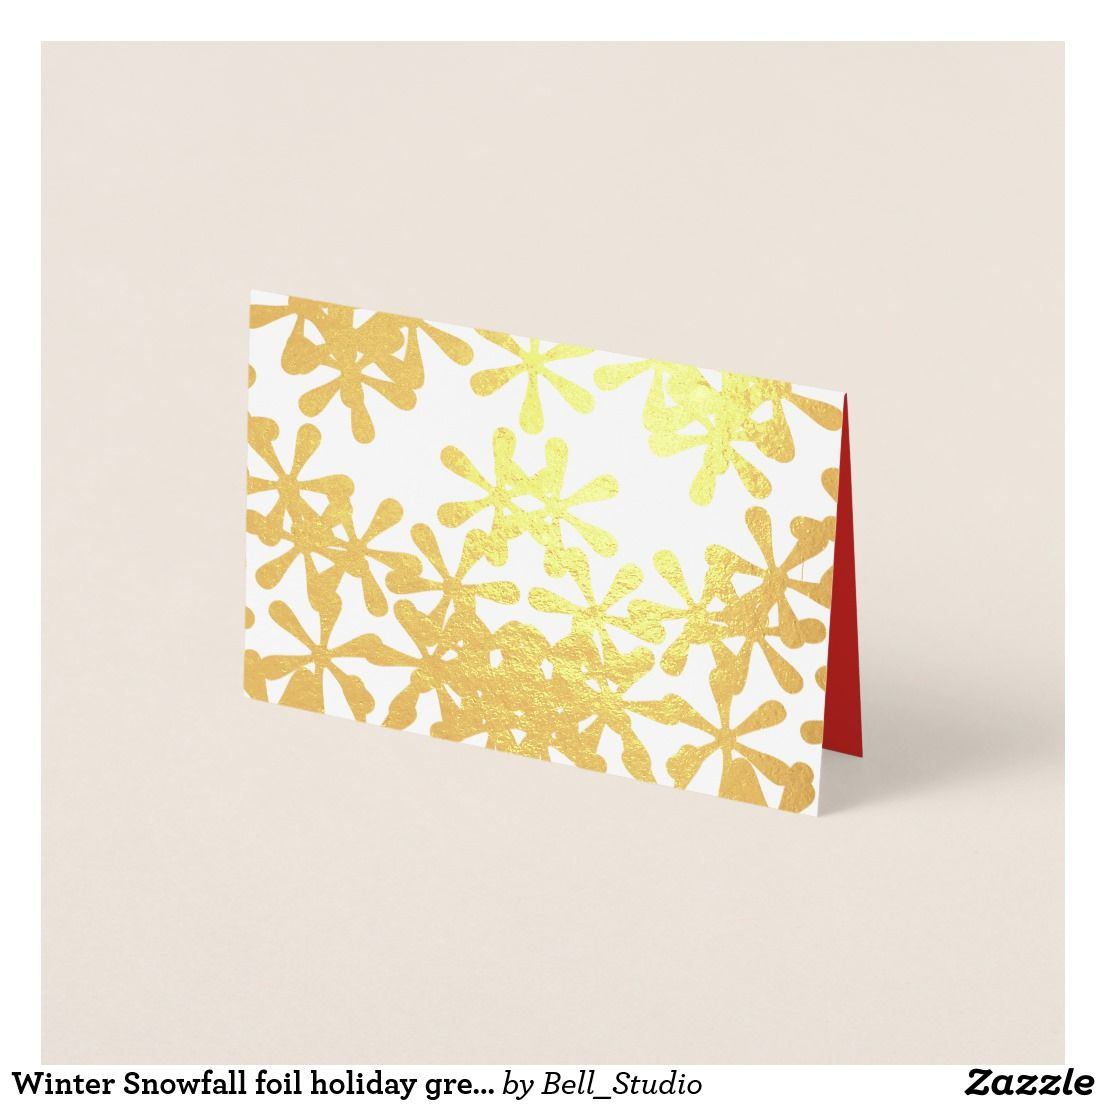 Winter snowfall foil holiday greeting card greeting cards winter snowfall foil holiday greeting card kristyandbryce Images